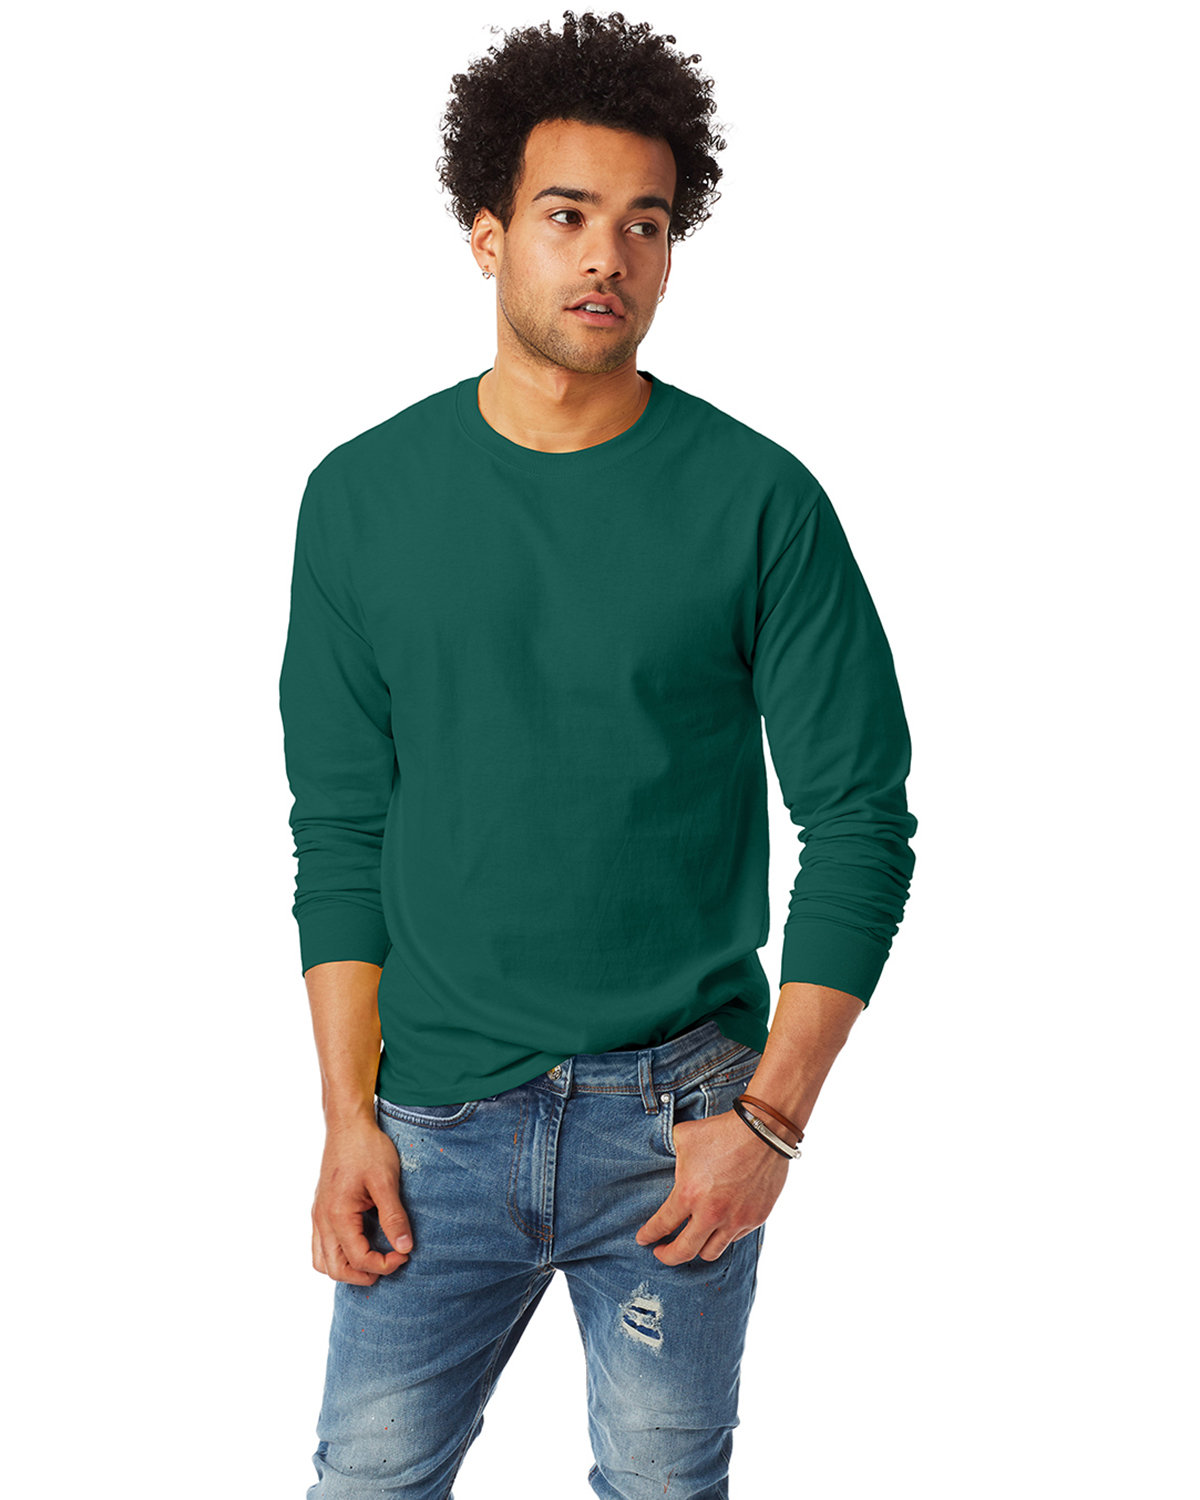 Hanes Adult Authentic-T Long-Sleeve T-Shirt DEEP FOREST